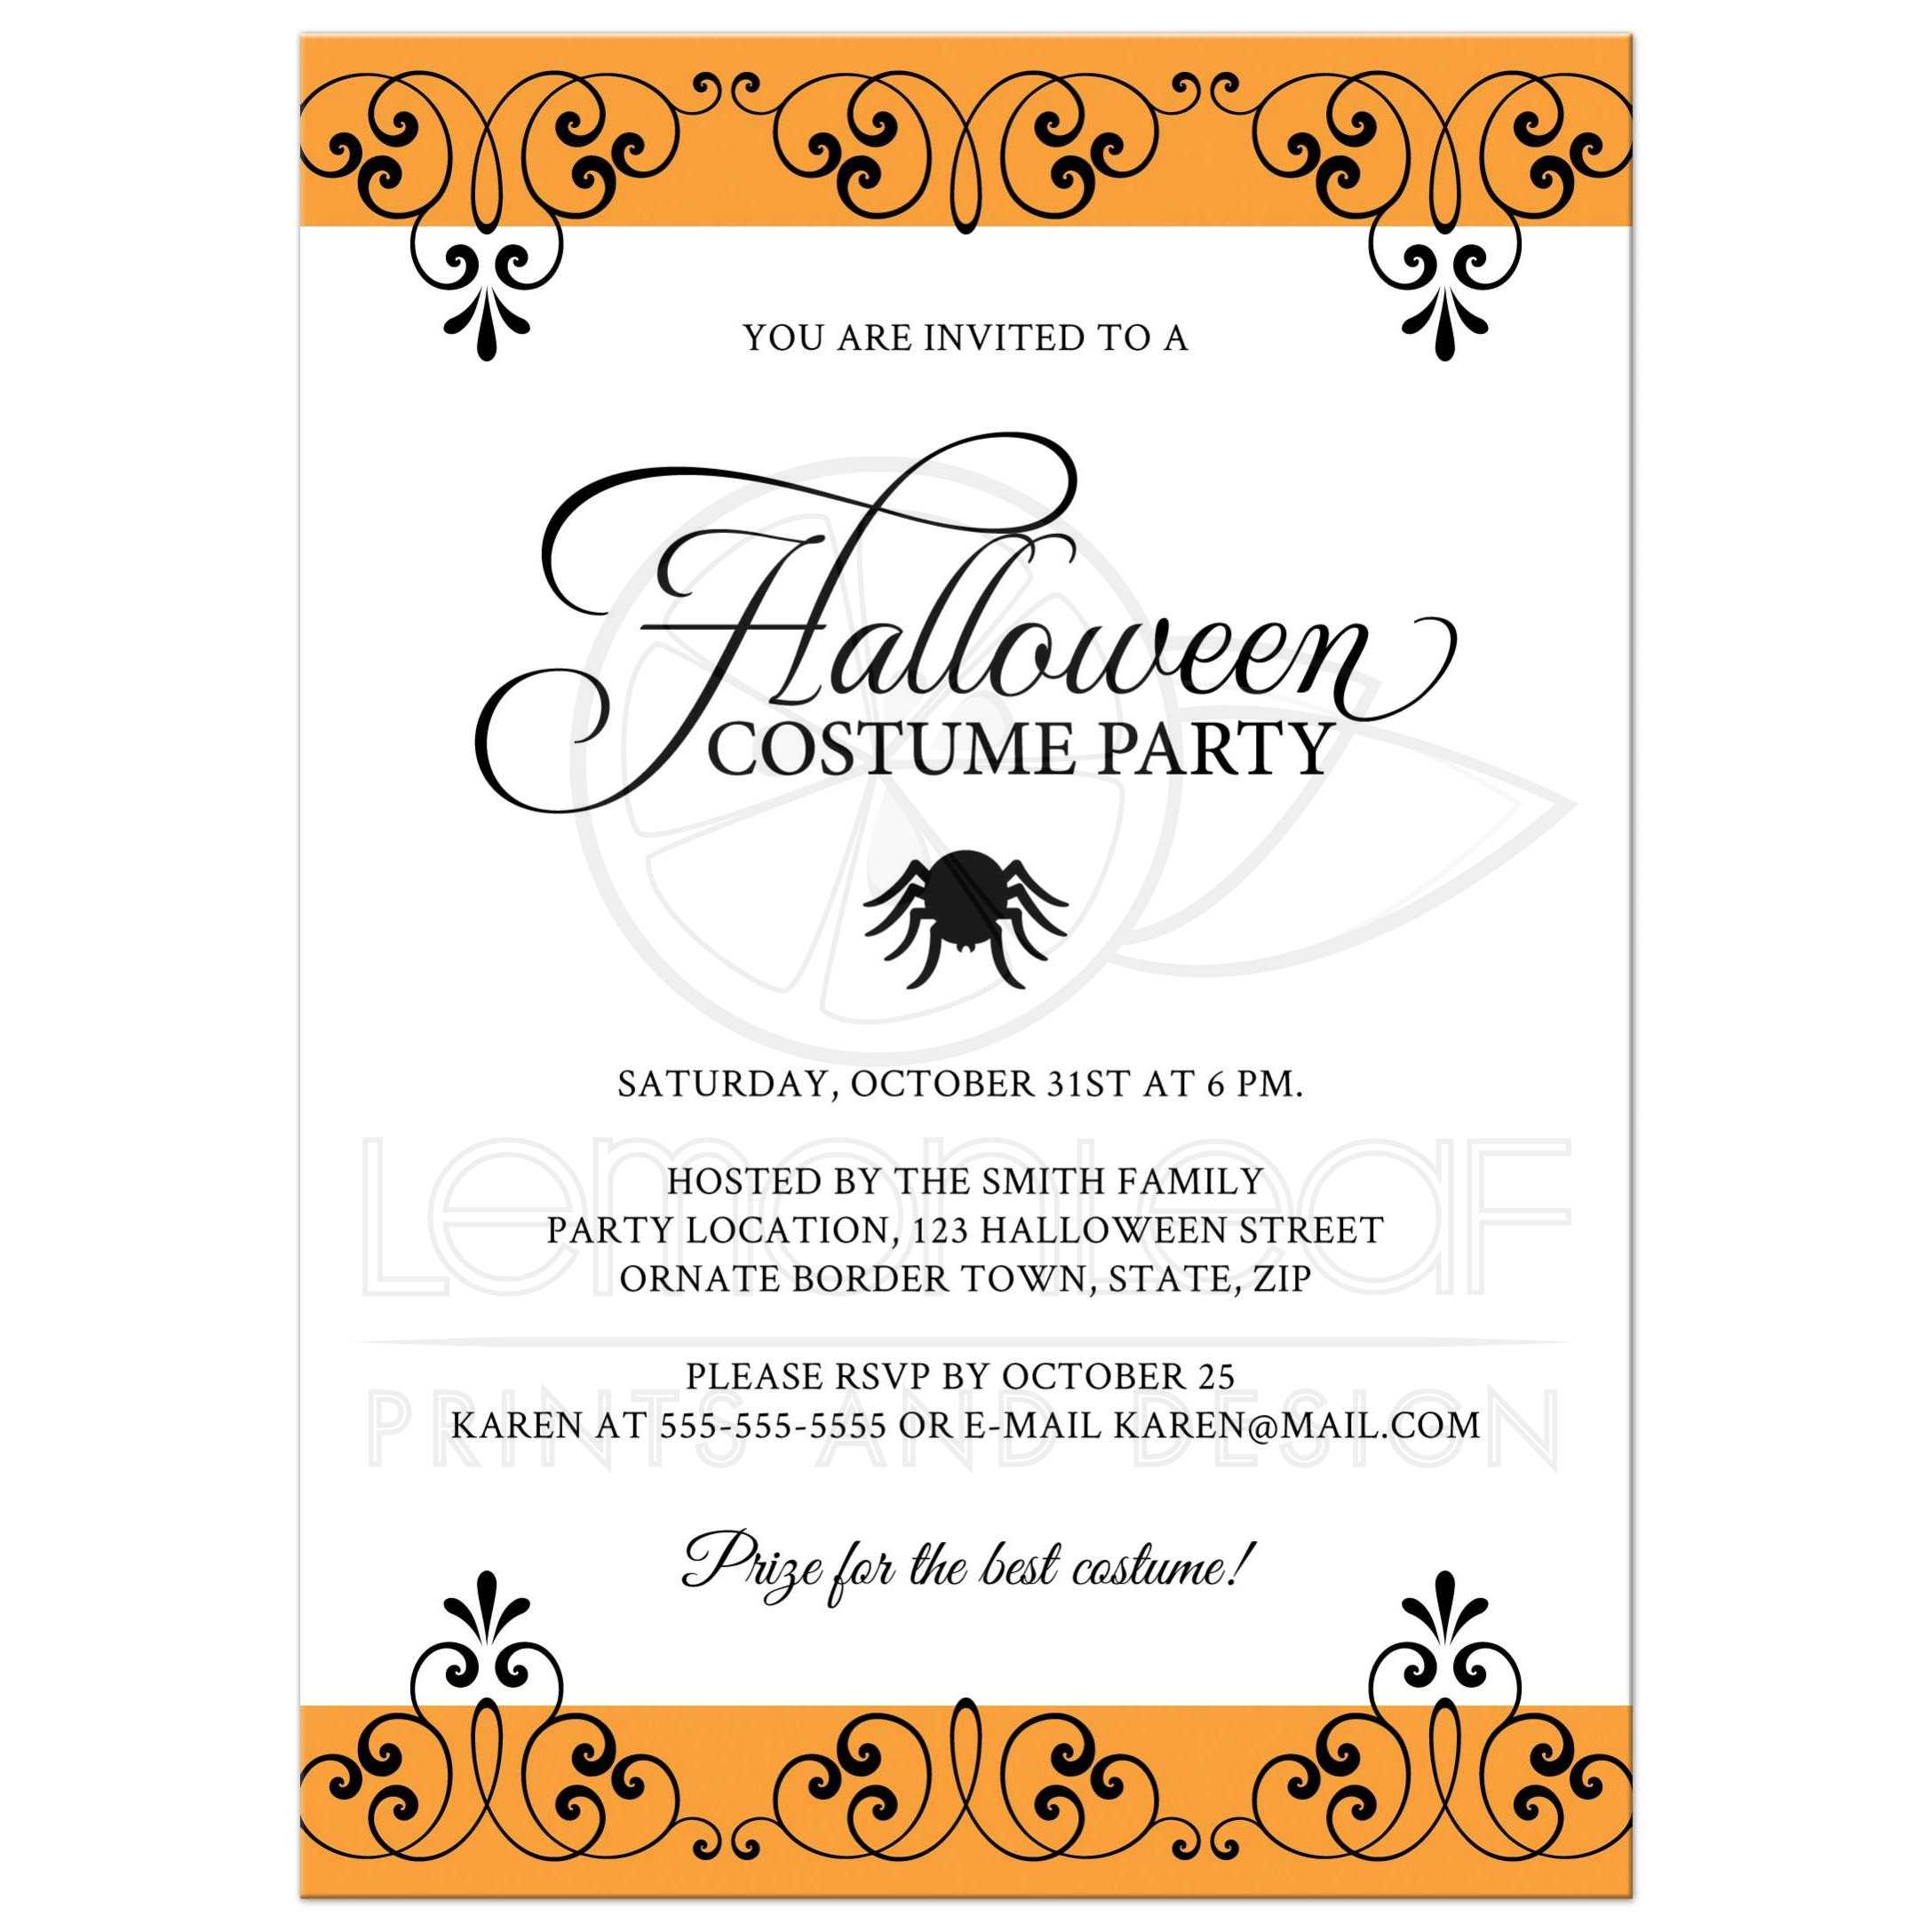 halloween costume party invitation with ornate black and orange borders